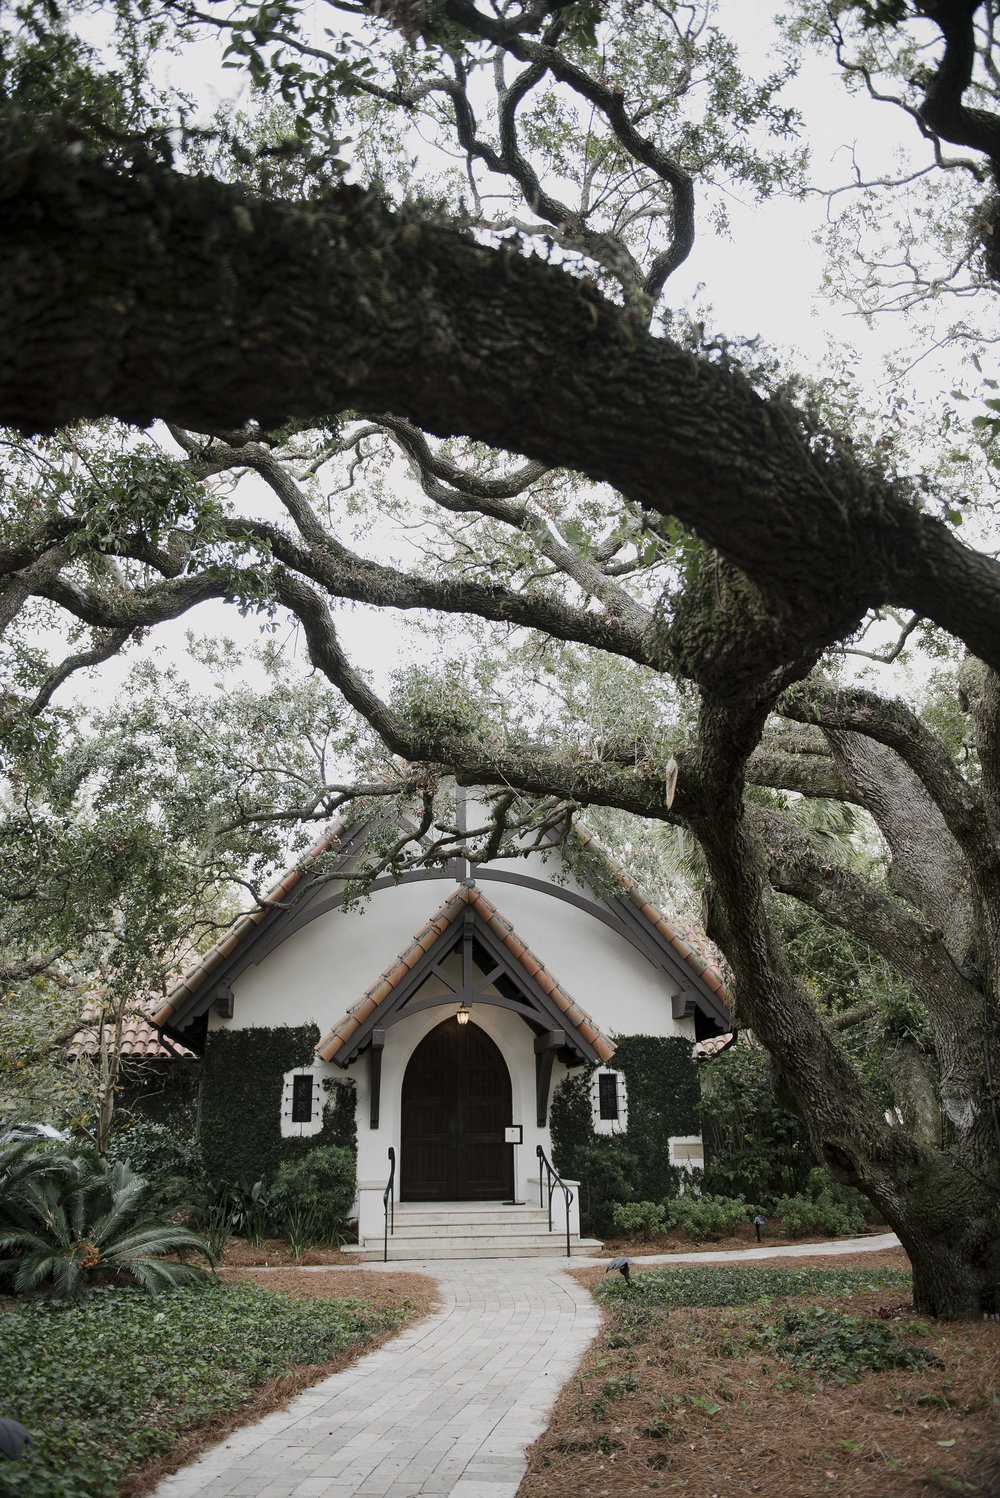 A chapel in the woods is the absolute hight of charming and romantic.  Could you even imagine getting married here?  Photo by Carla Ten Eyck.